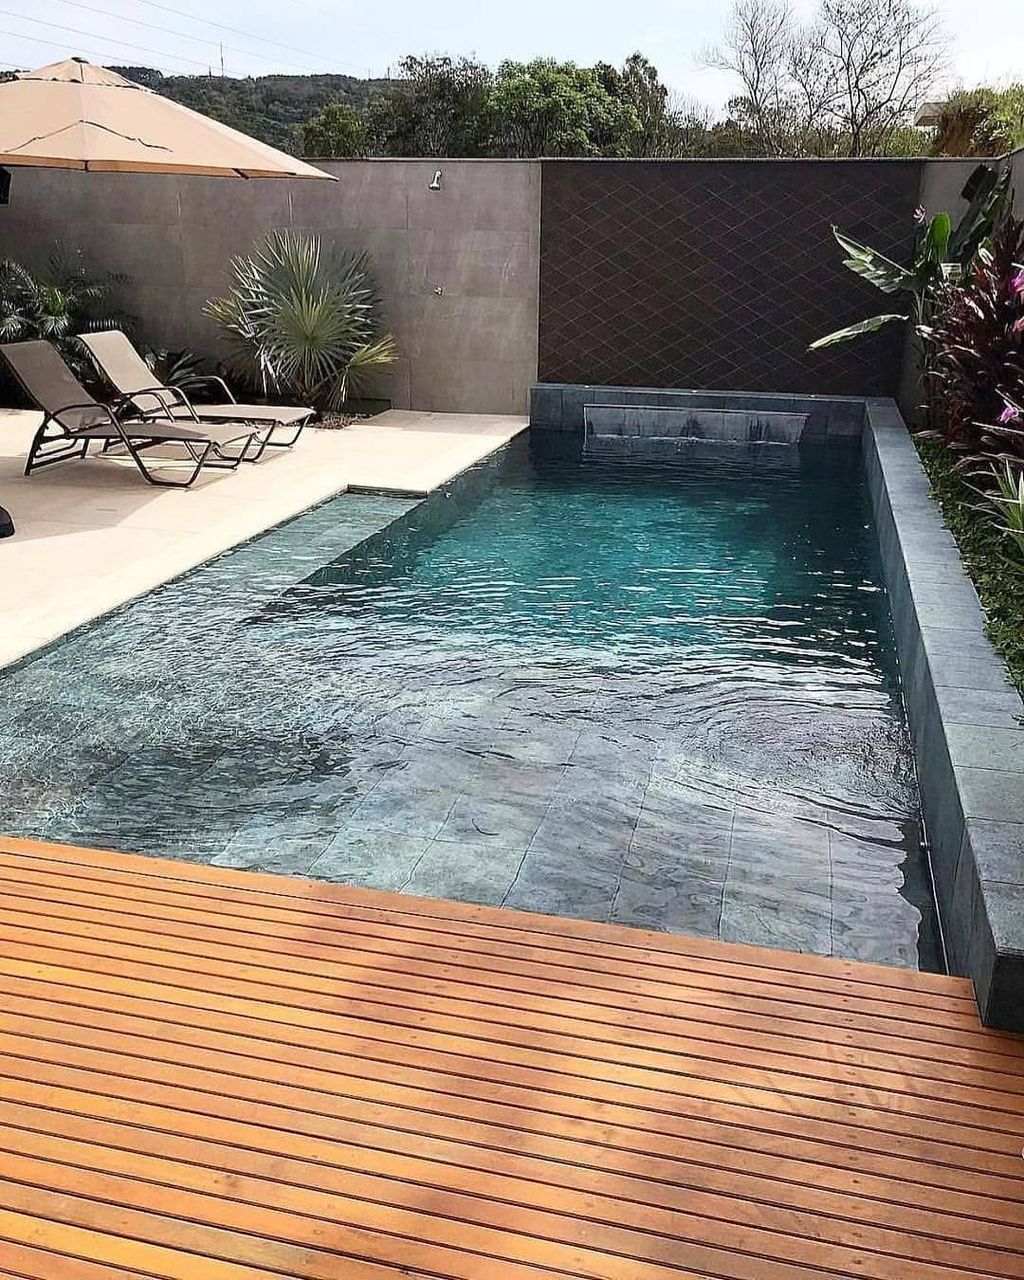 Awesome Ideas For Getting New Outside Swimming Pools Cool Swimming Pools Luxury Swimming Pools Small Pool Design